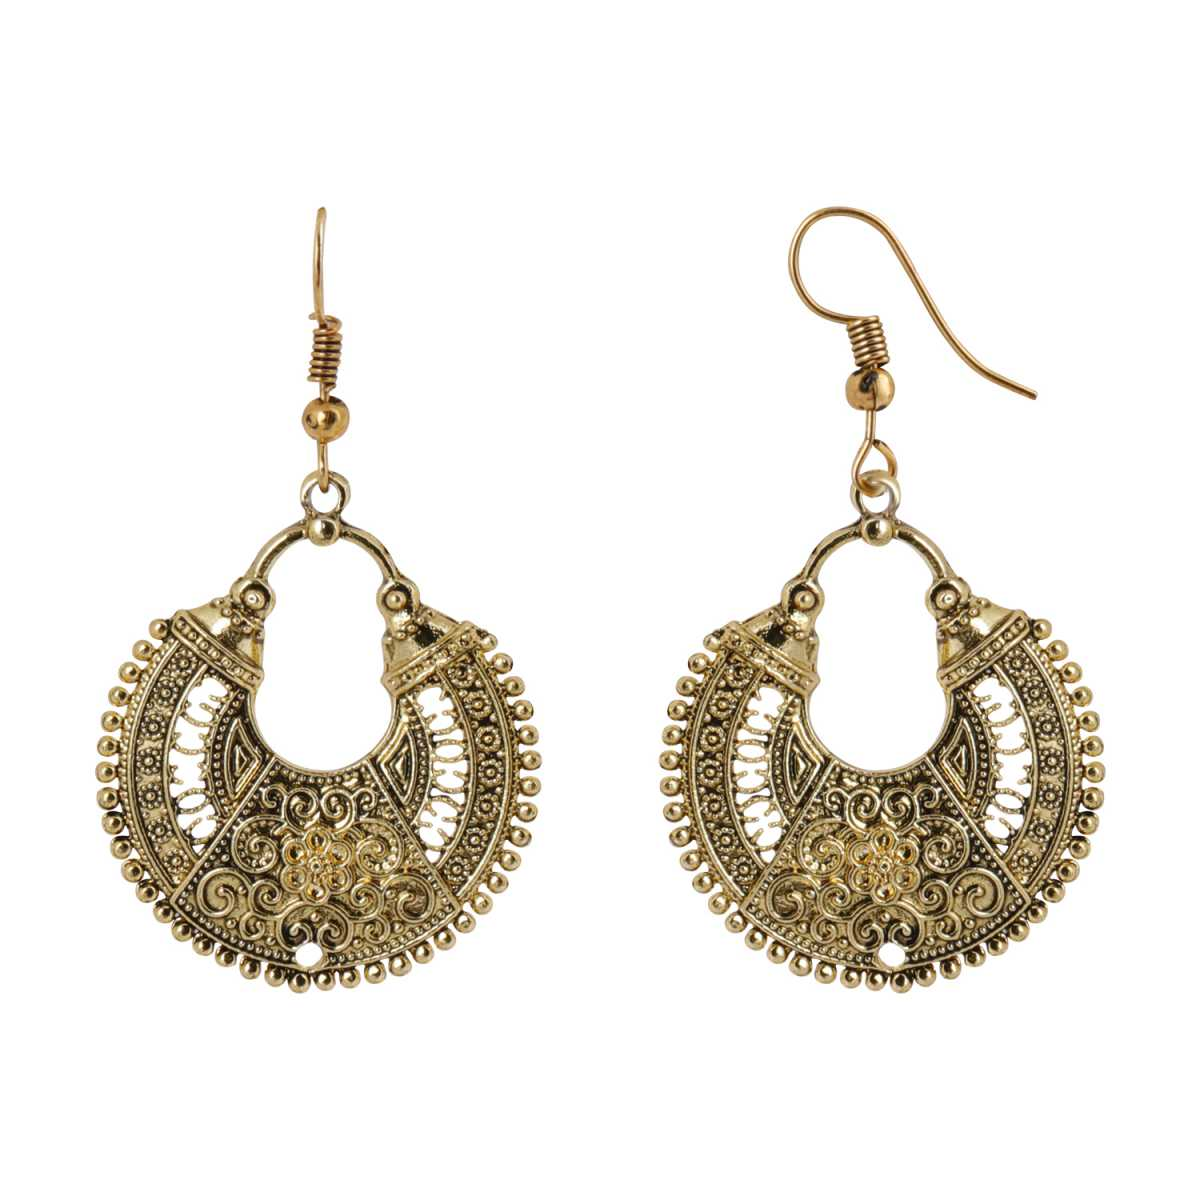 Silver Shine Stunning Golden Chandbali Earrings for Women